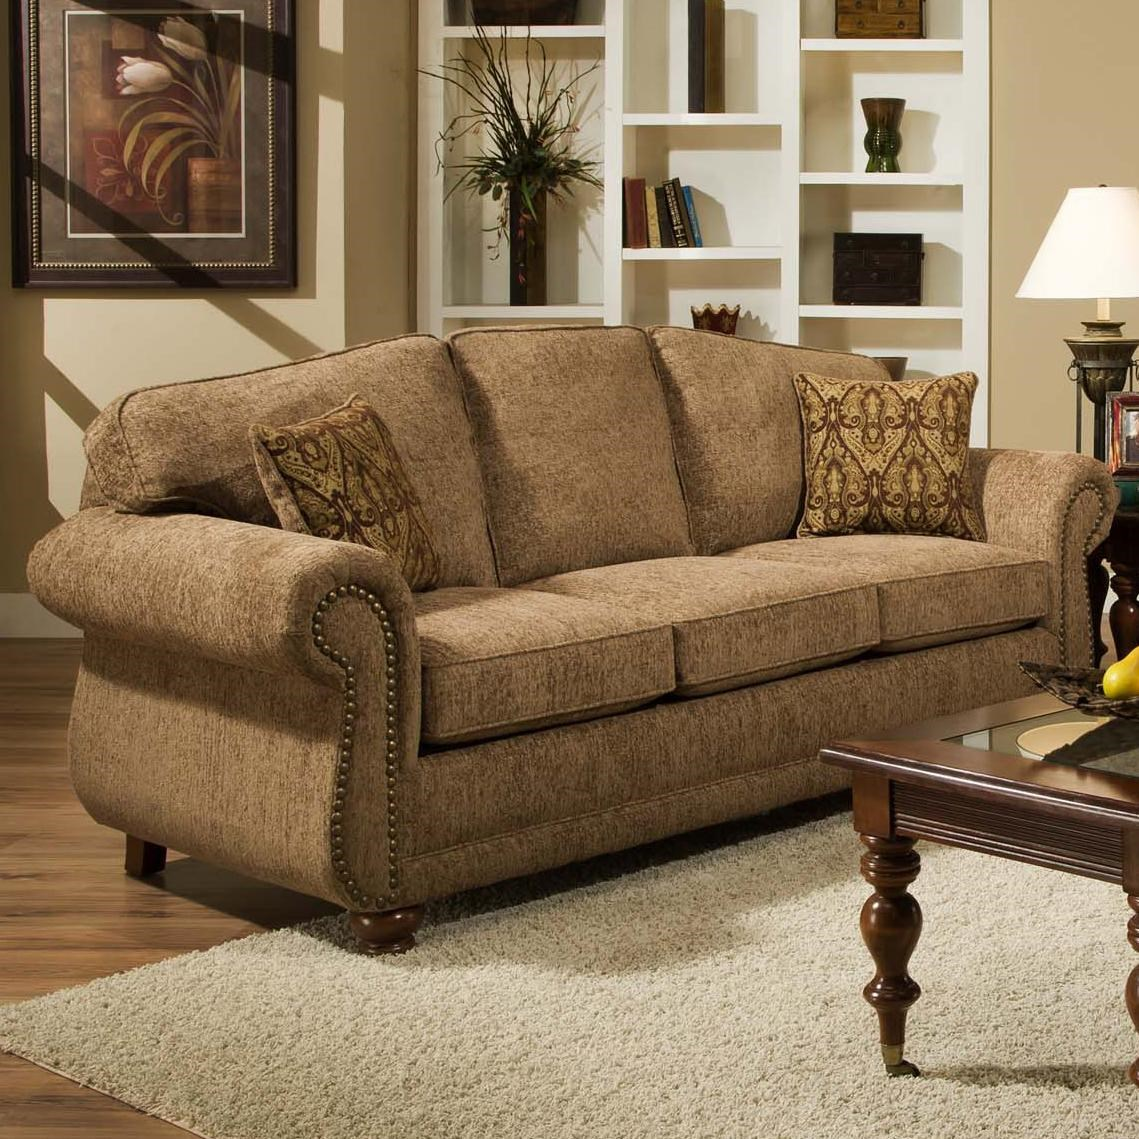 Traditional Sofa With With Nail Head Trim 6000 By